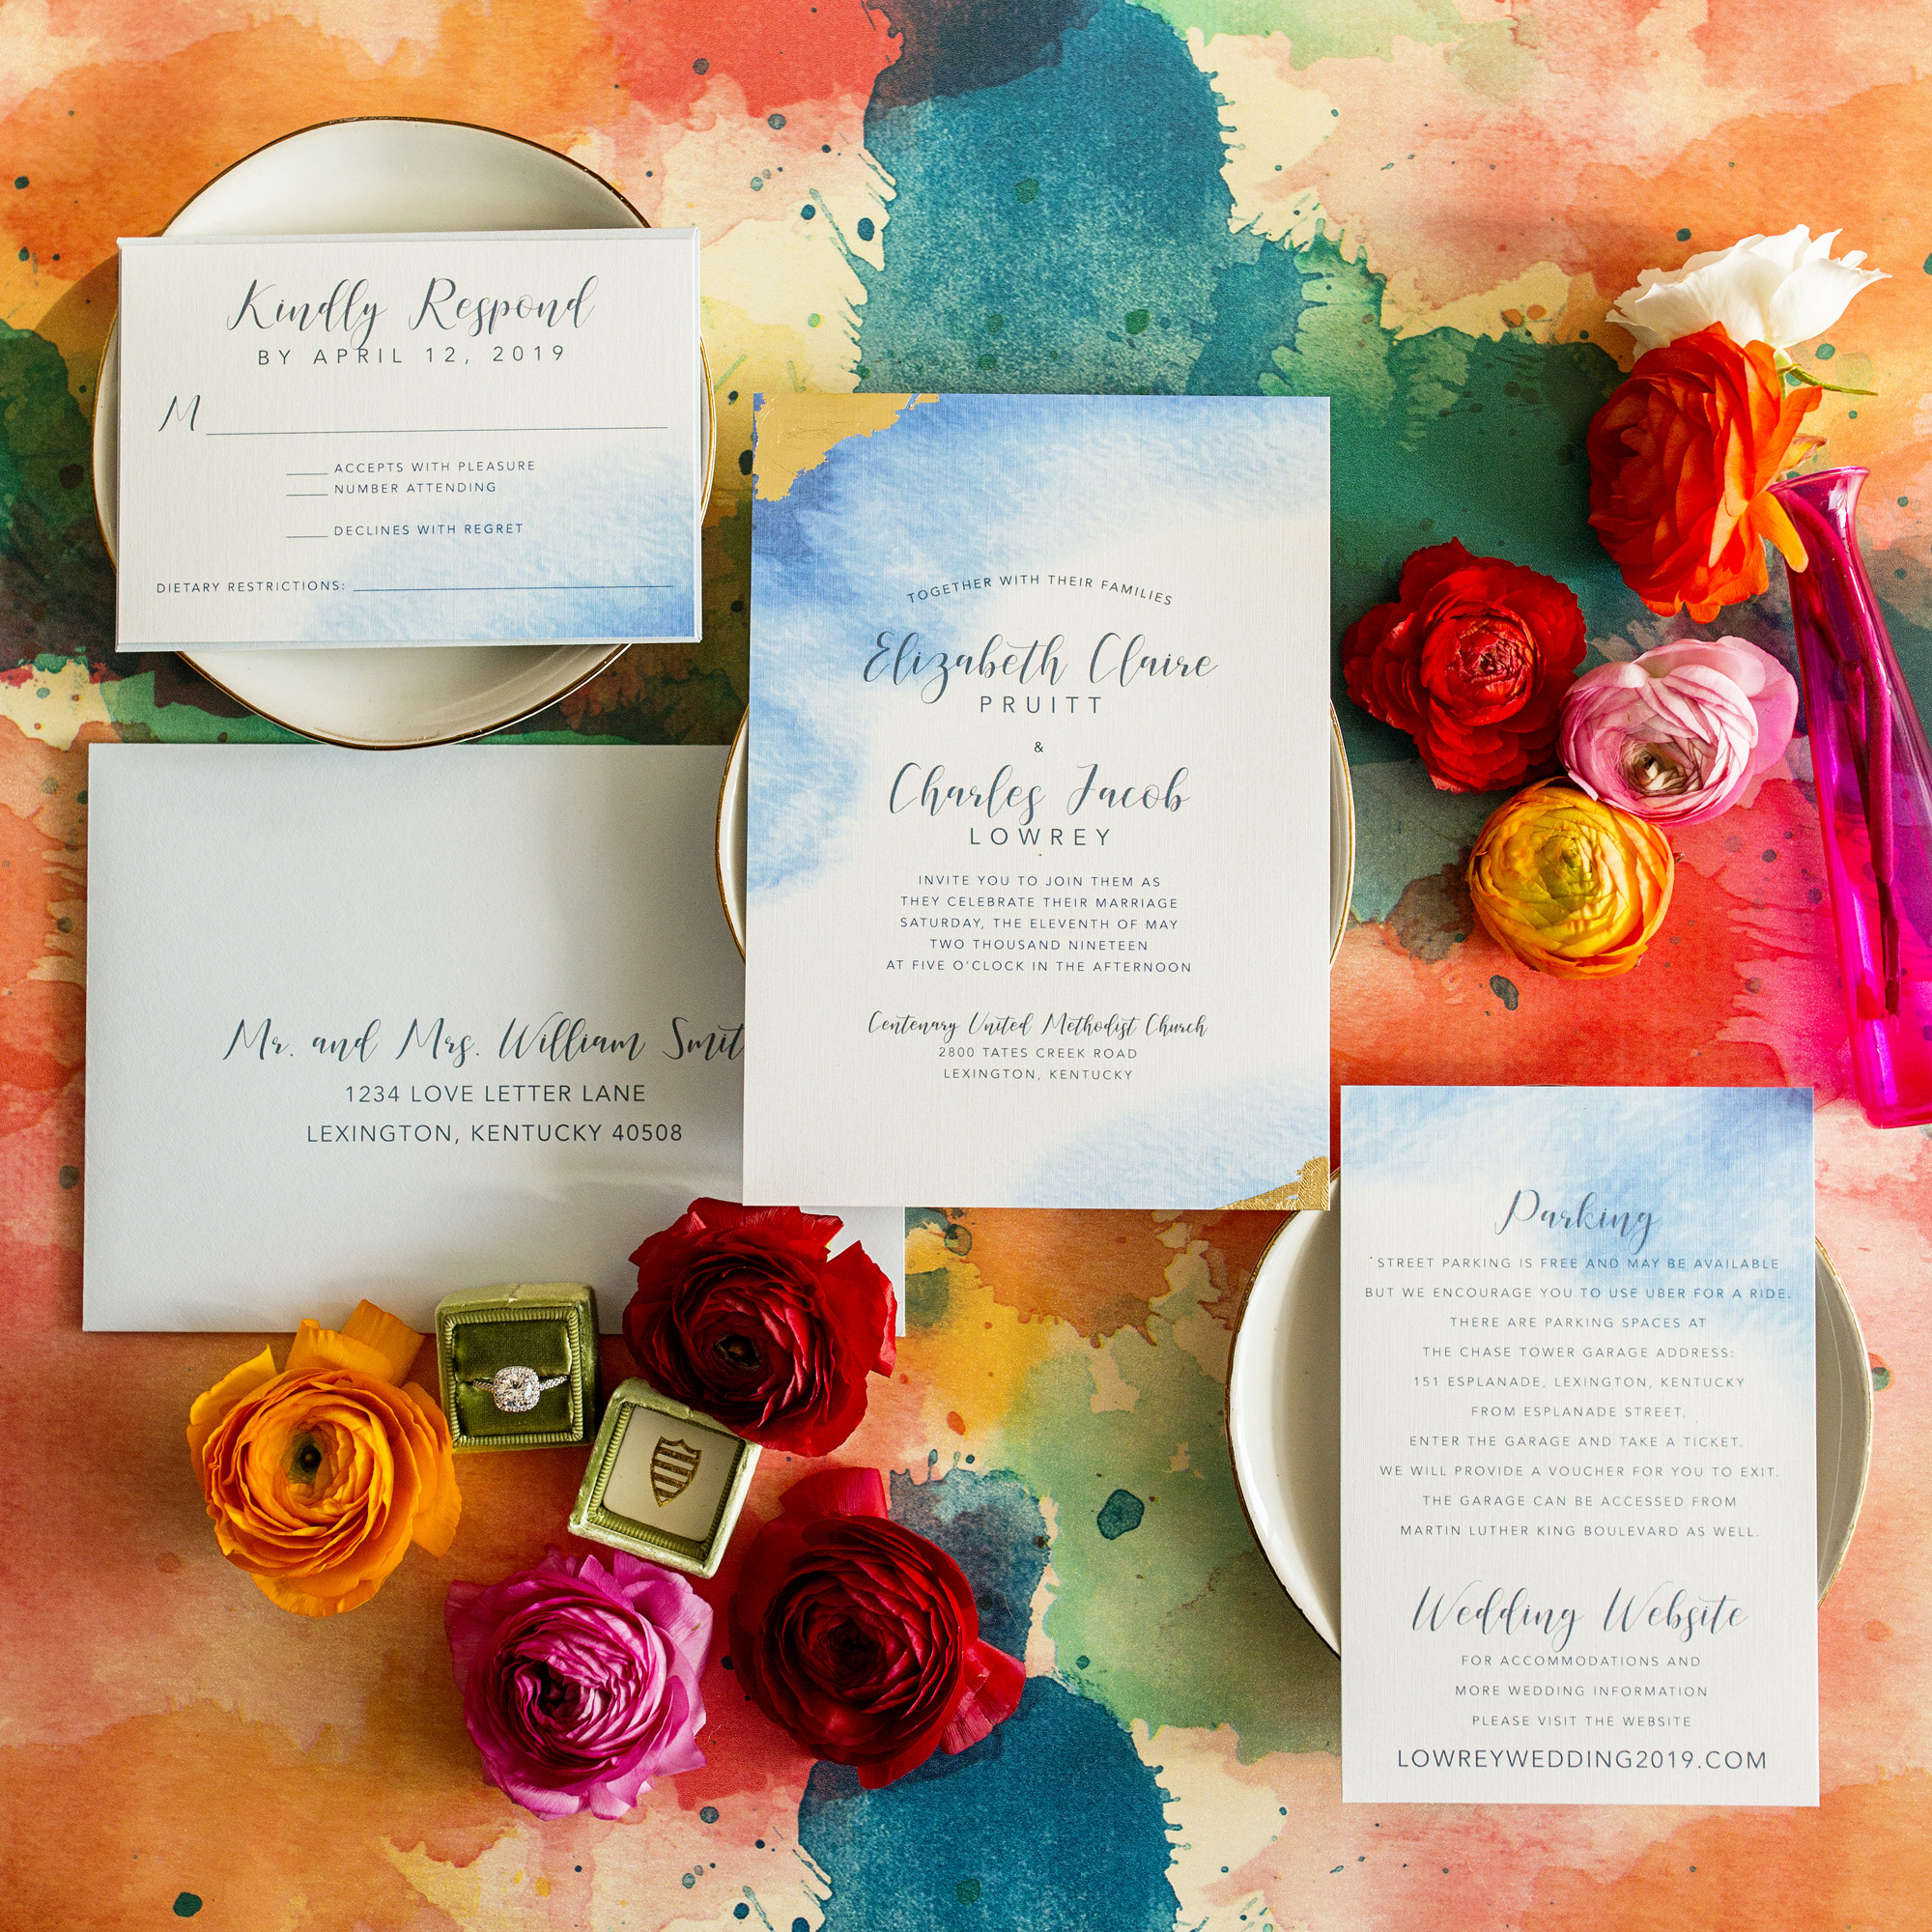 Seriously_Sabrina_Photography_Commercial_Simply_Done_Invites_2019_March_033